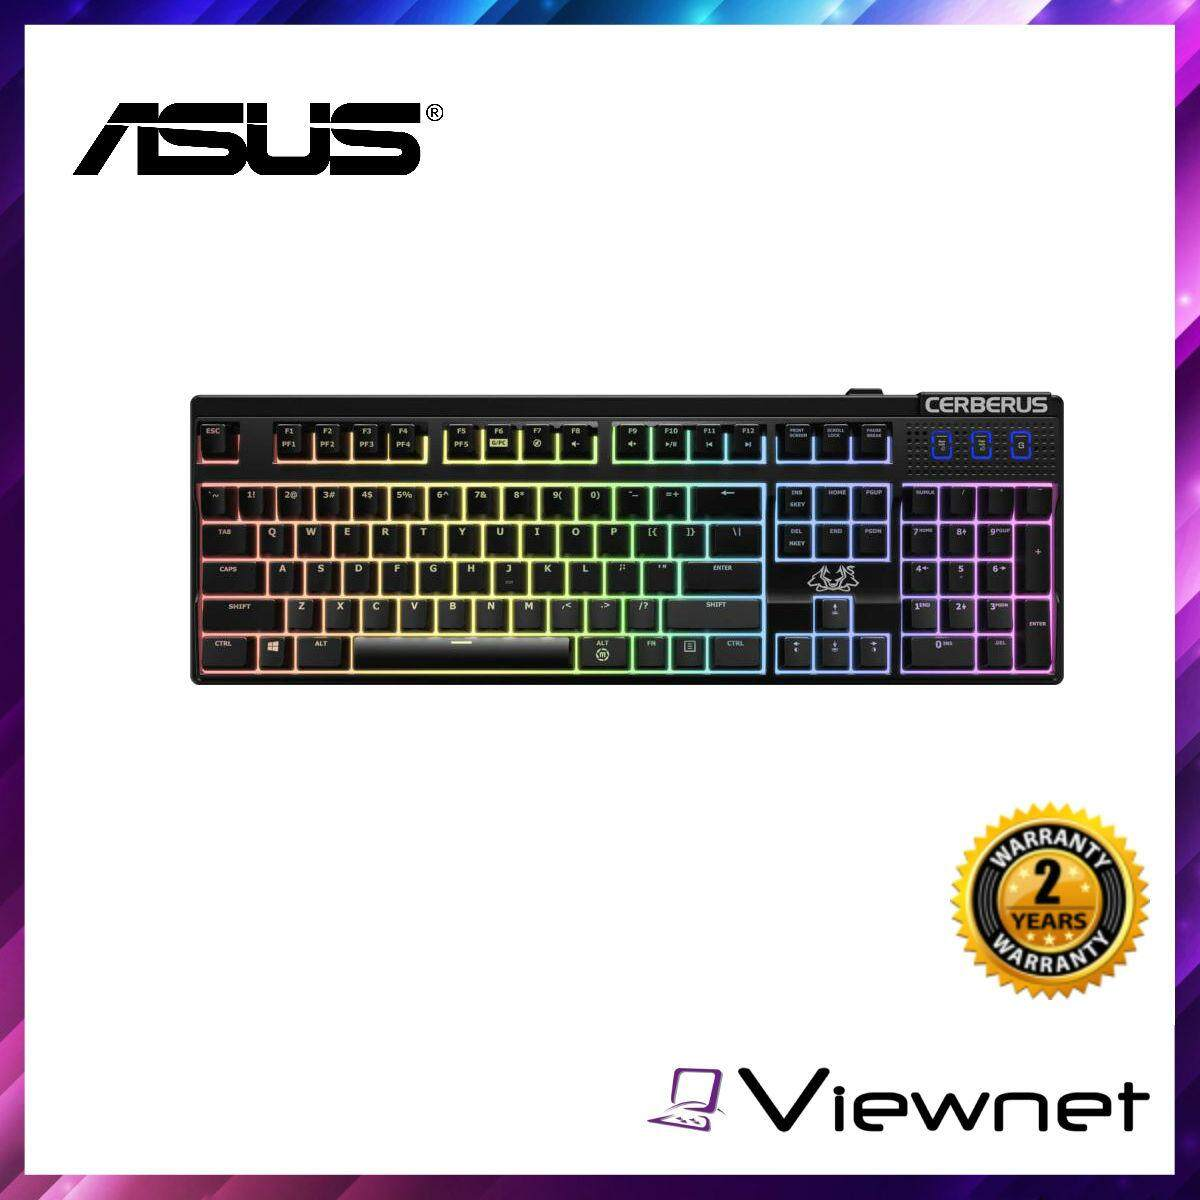 ASUS KEYBOARD WIRED CERBERUS MECH RGB MECHANICAL BLUE SWITCH